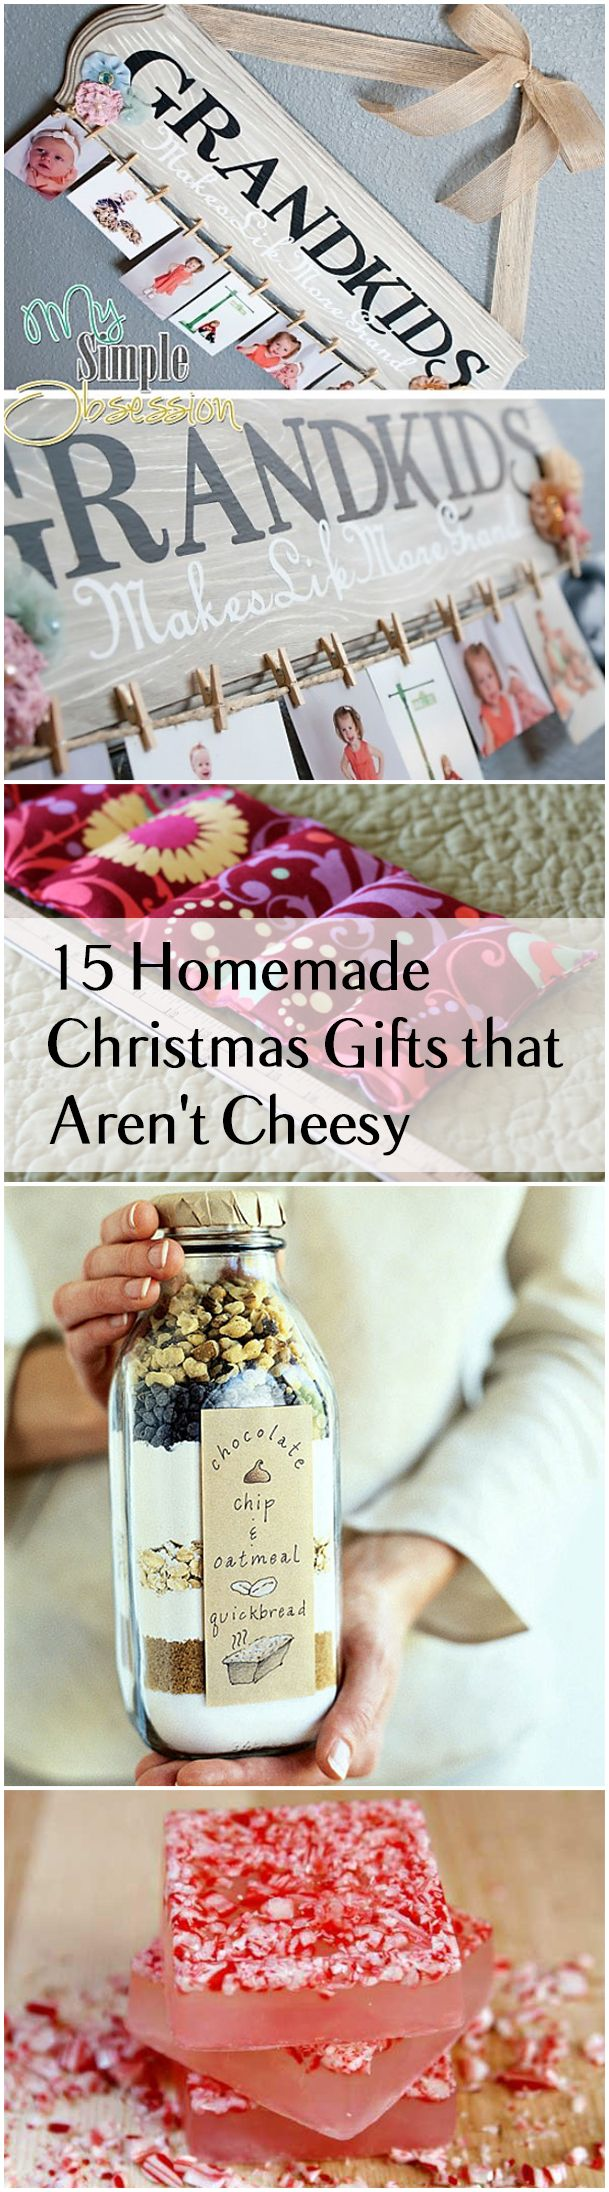 Cheap homemade christmas gifts pinterest